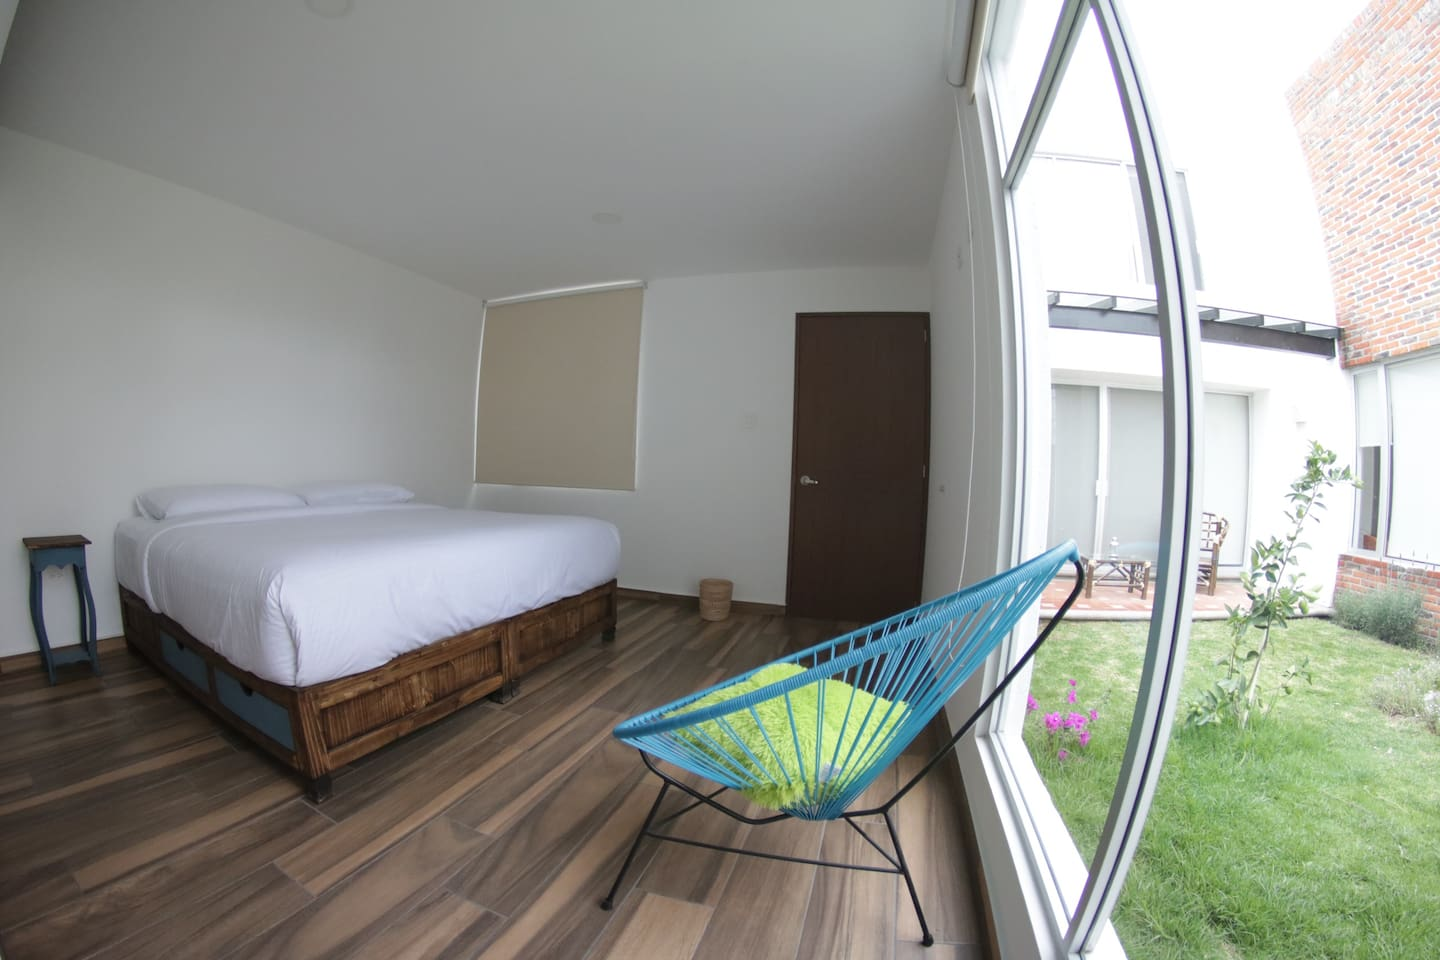 Cama king, muy ventilada y luminosa, persianas blackout y la mejor vista al jardín. King bed, iluminated and fresh, with blackout blinds and the best view to our garden.